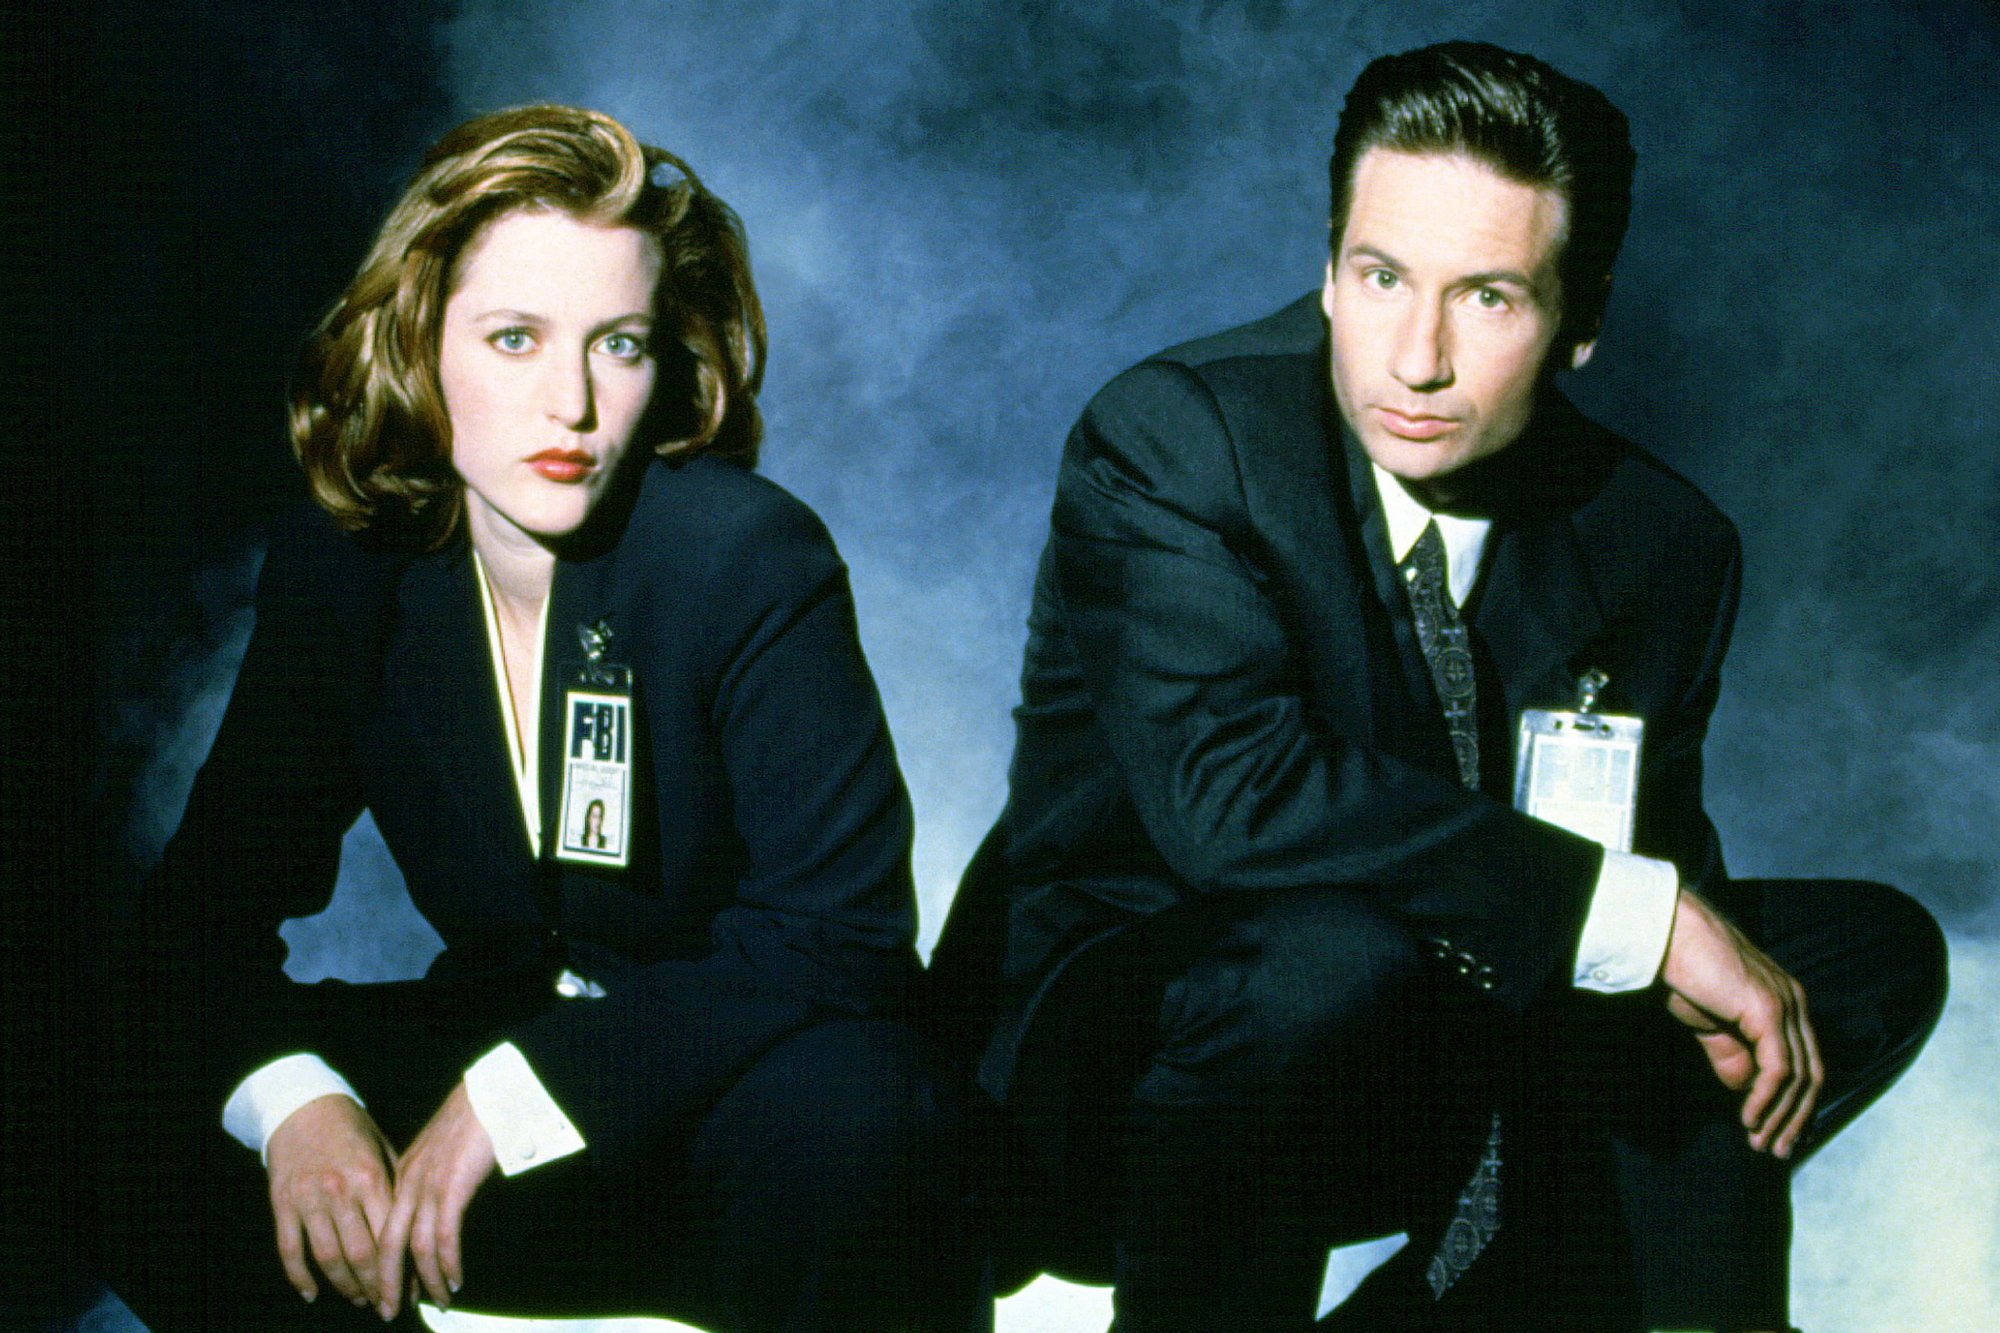 David Duchovny just spilled about Scully and Mulder's relationship in the 'X-Files' reboot